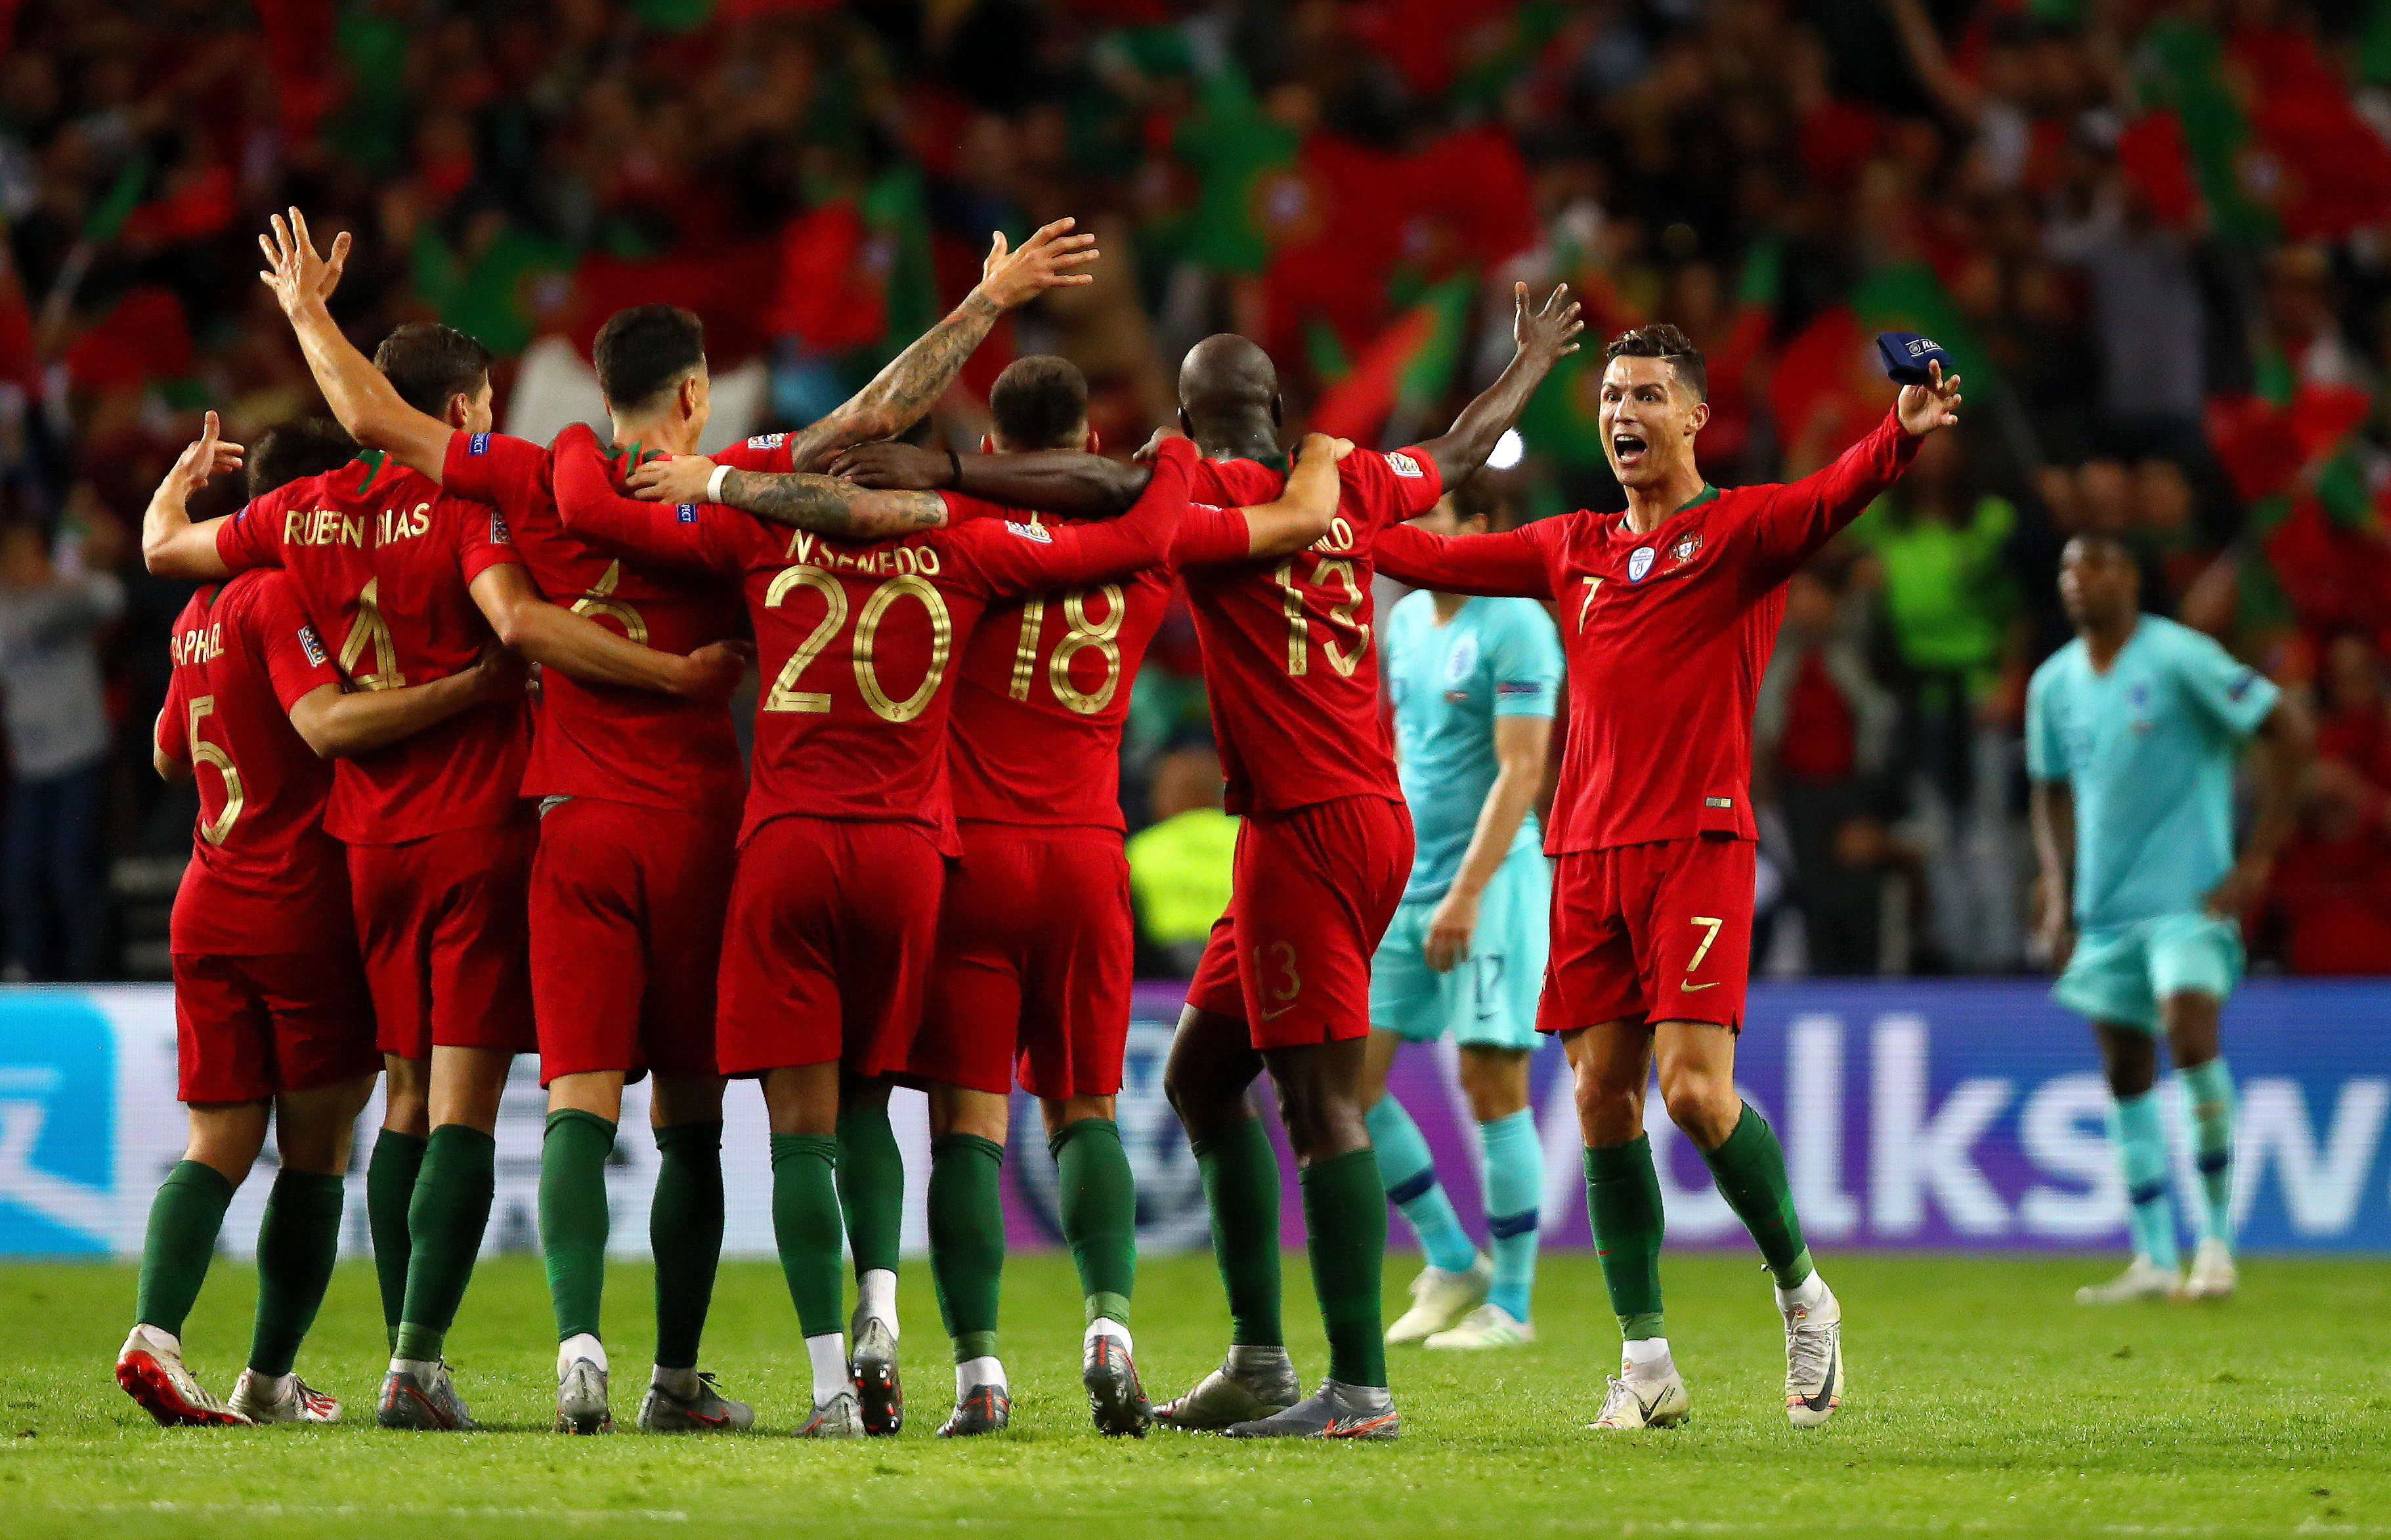 Portugal celebrated wildly in front of their home supporters